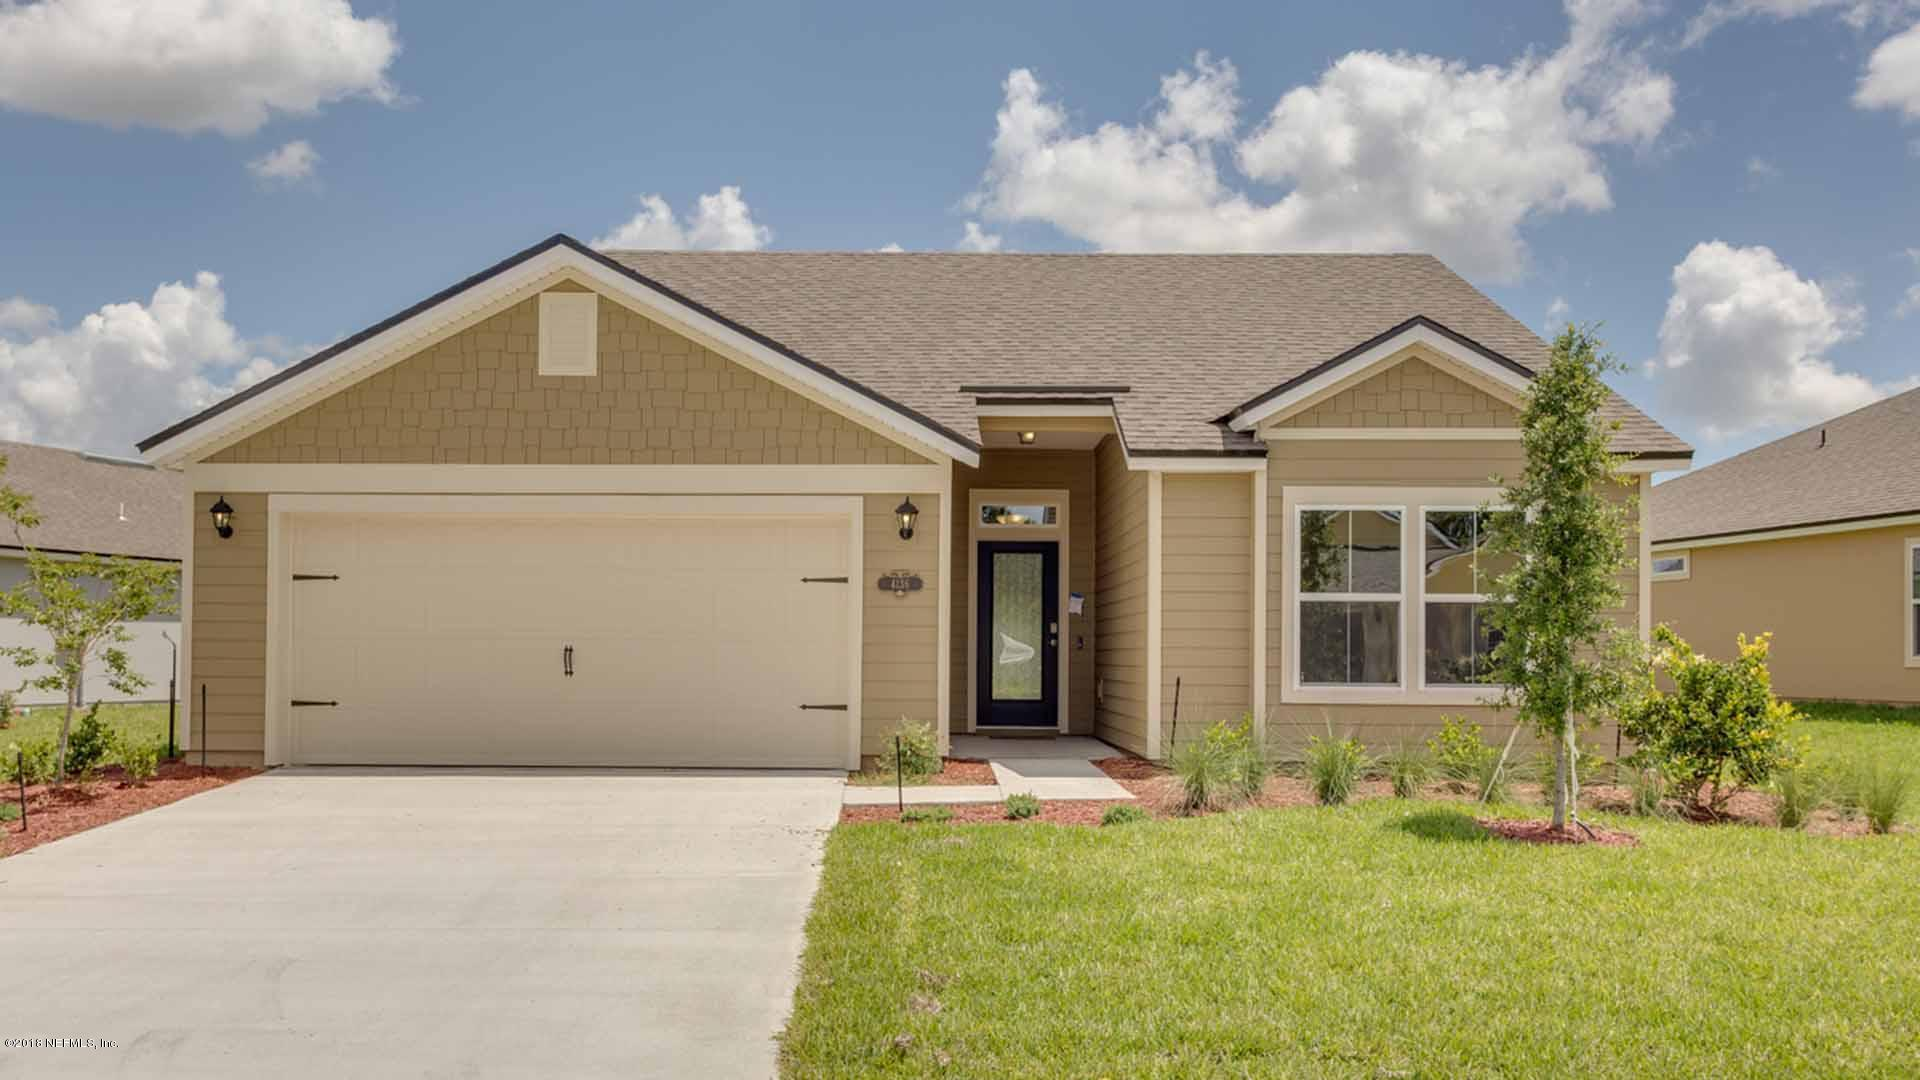 4136 SPRING CREEK, MIDDLEBURG, FLORIDA 32068, 4 Bedrooms Bedrooms, ,2 BathroomsBathrooms,Residential - single family,For sale,SPRING CREEK,906567